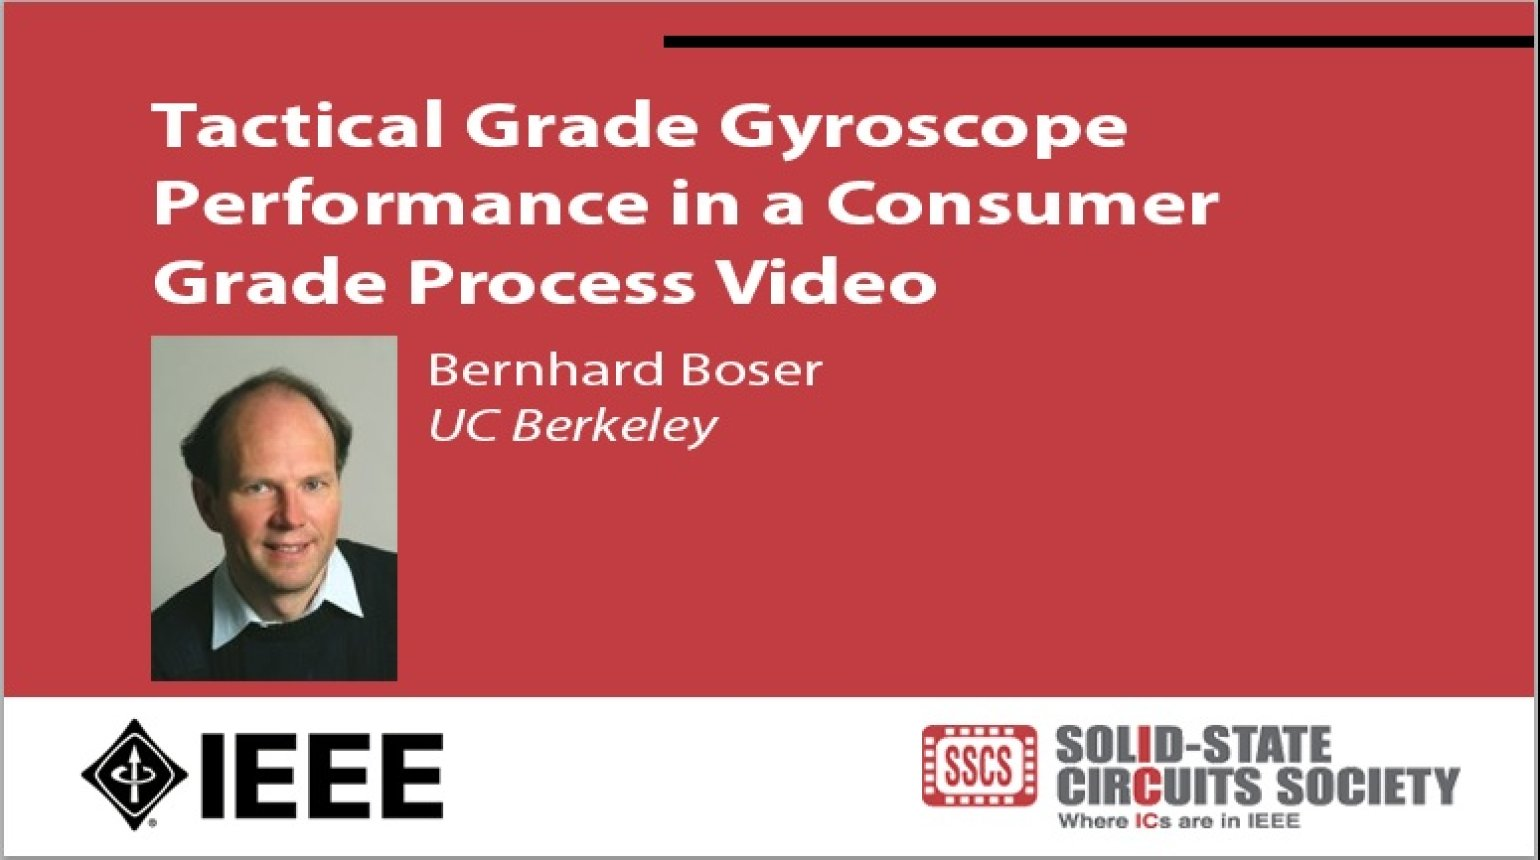 Tactical Grade Gyroscope Performance in a Consumer Grade Process Video